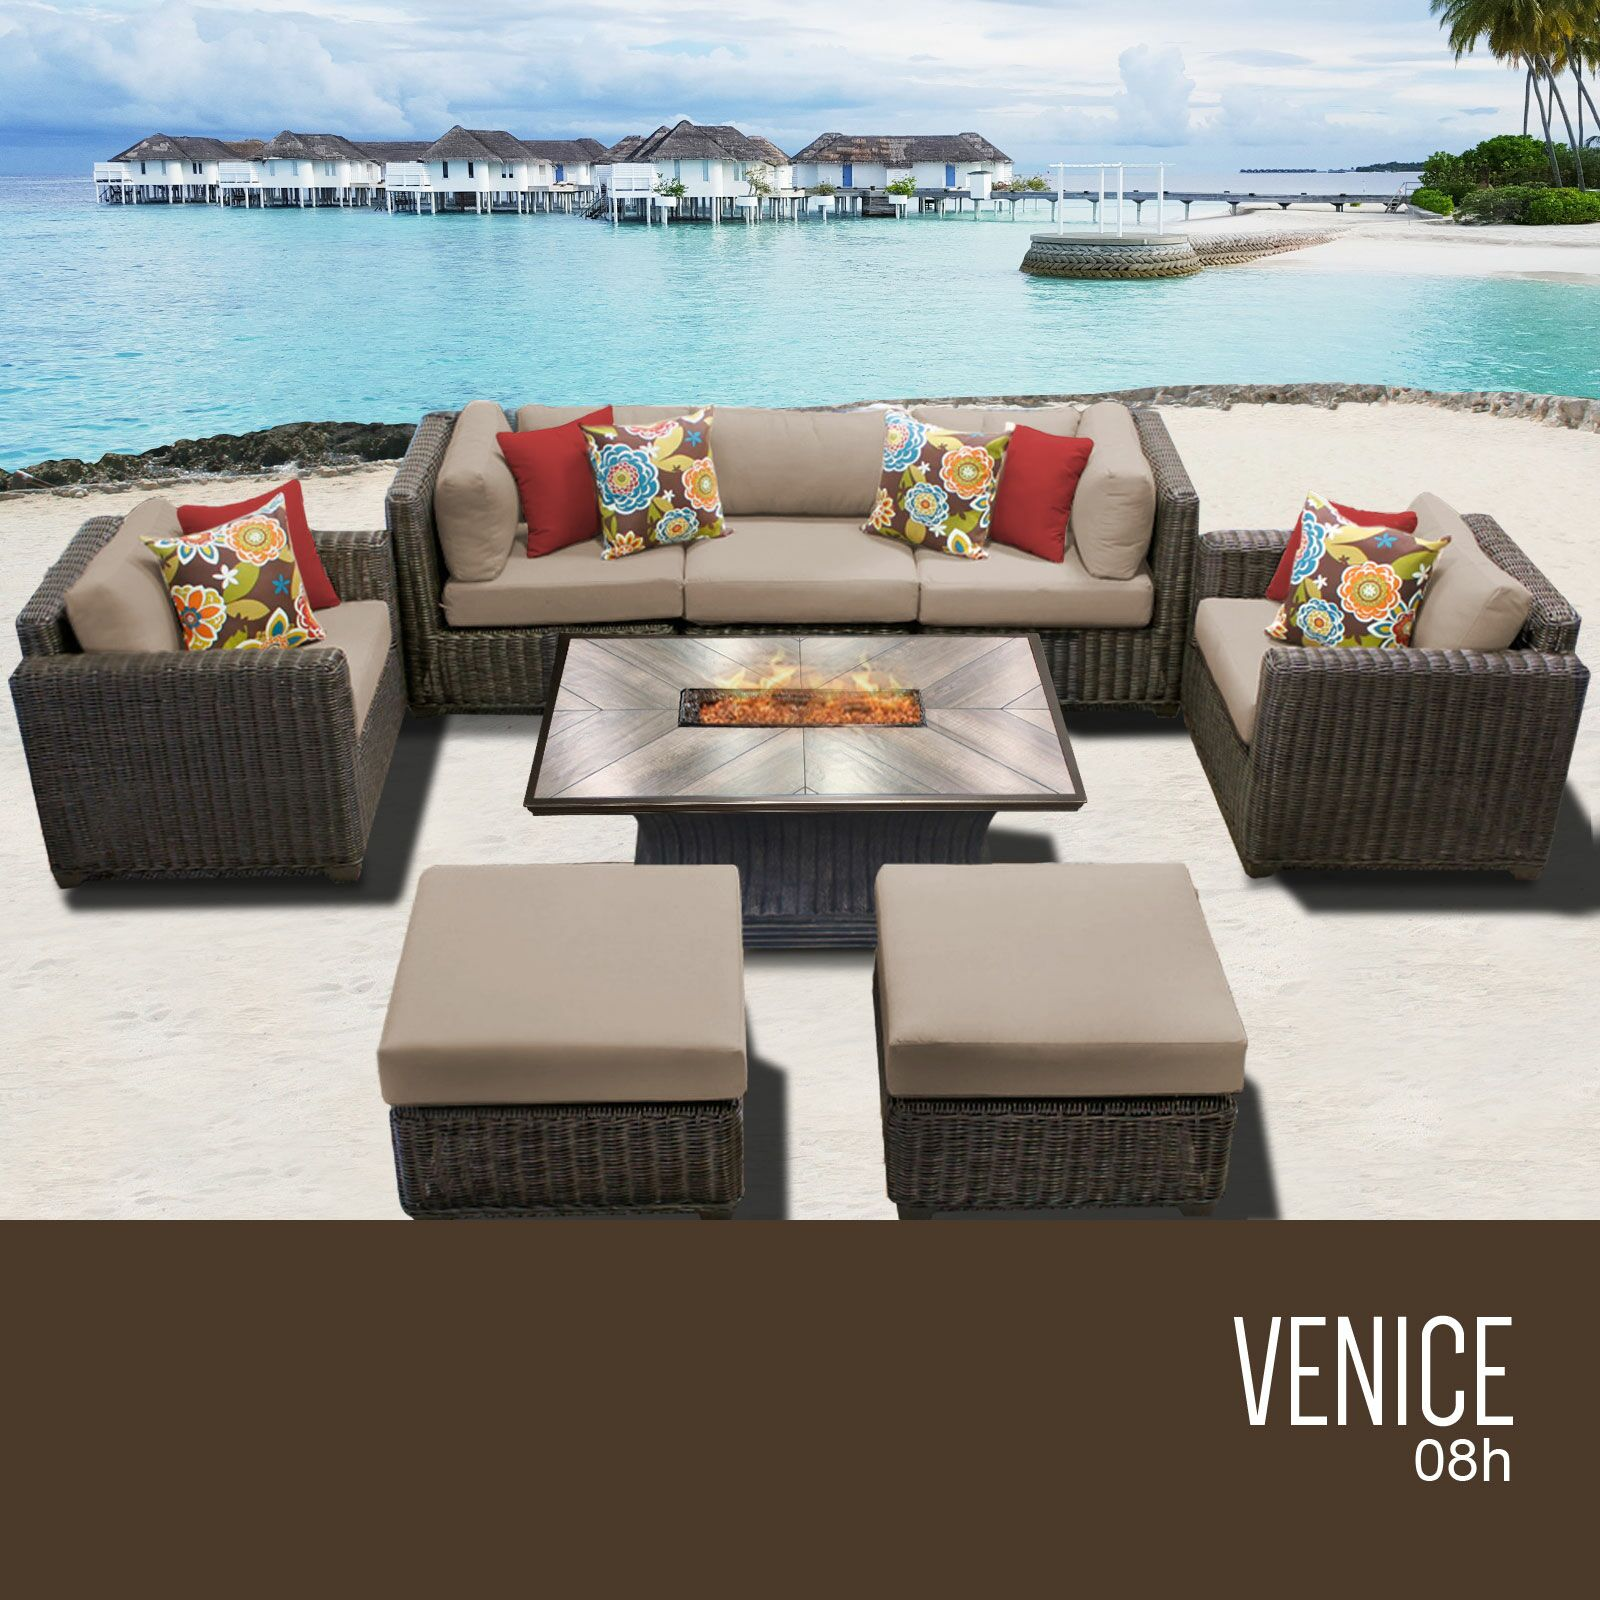 Eldredge 8 Piece Sectional Set with Cushions Cushion Color: Wheat